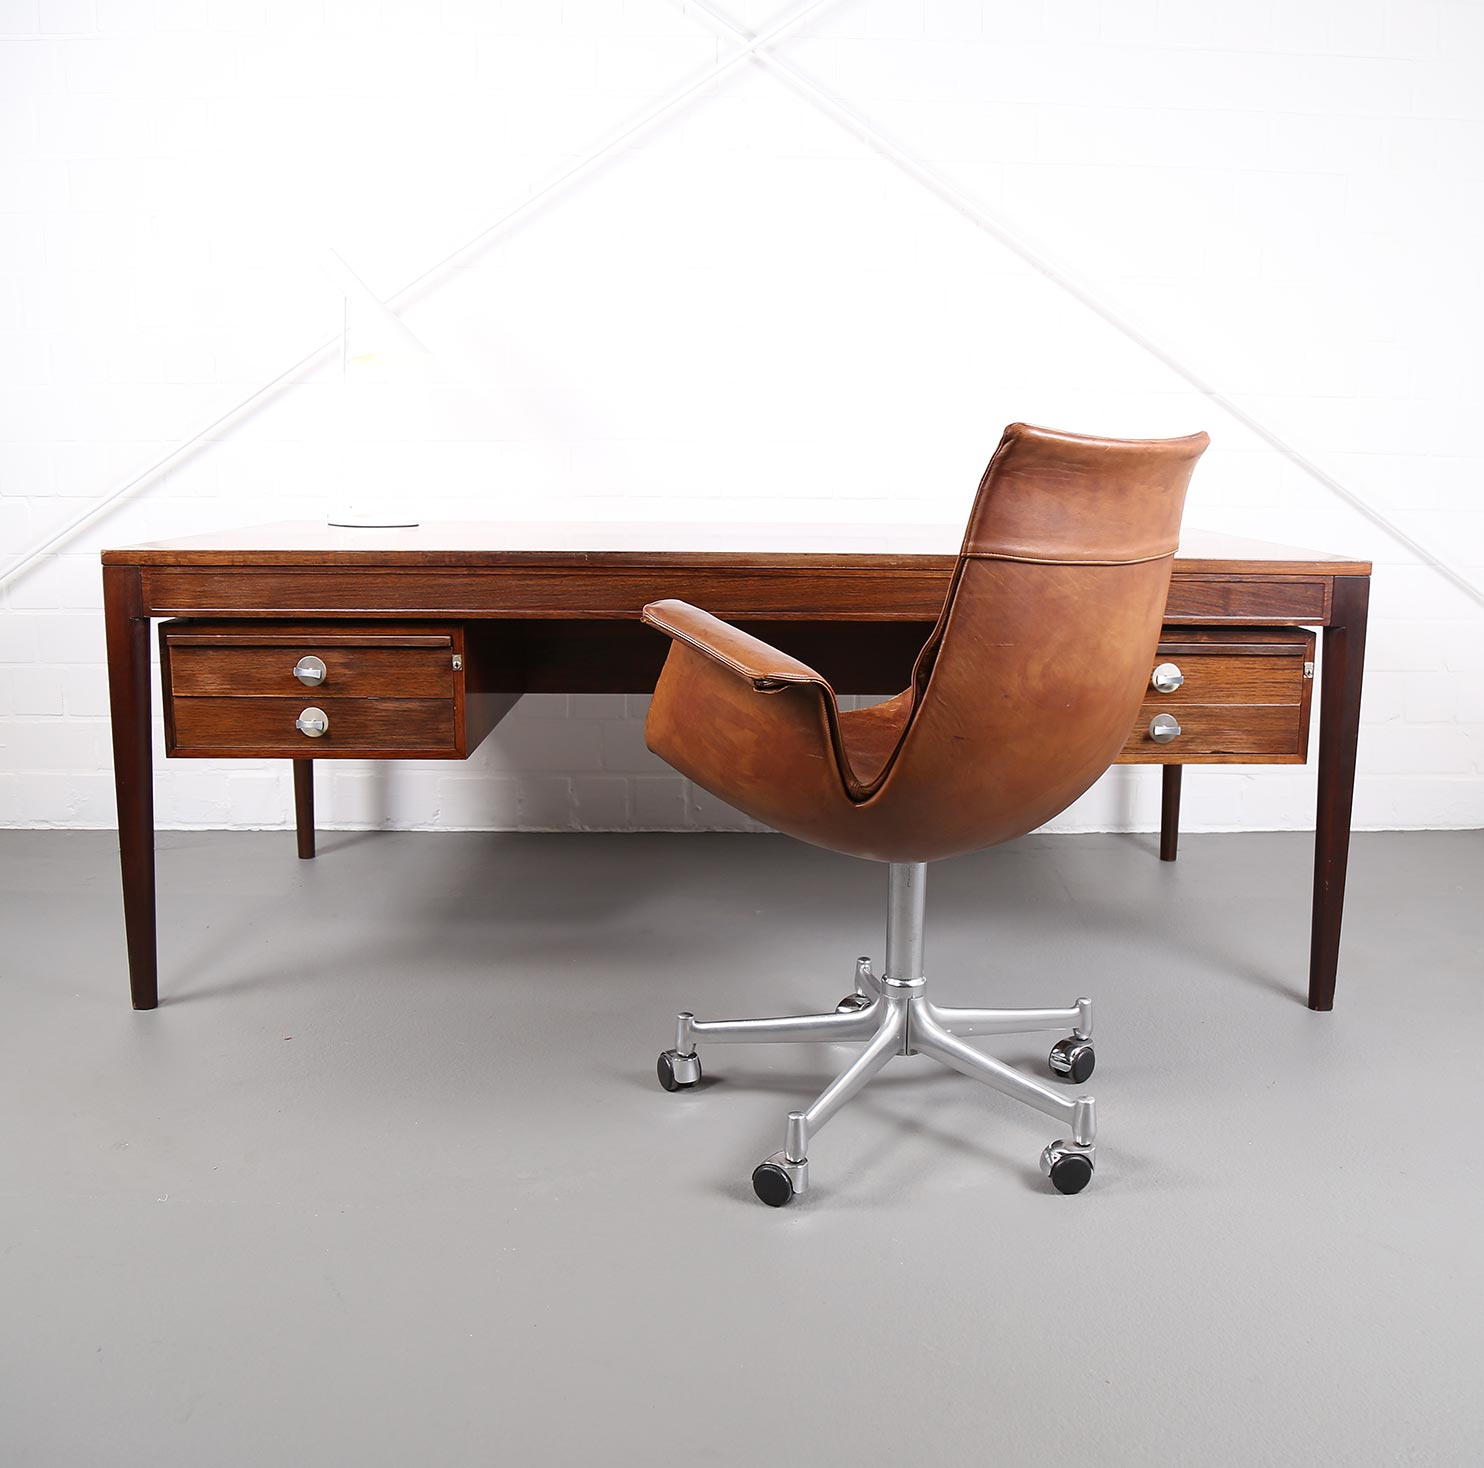 schreibtisch diplomat finn juhl f r france s n danish design midcentury modern ebay. Black Bedroom Furniture Sets. Home Design Ideas